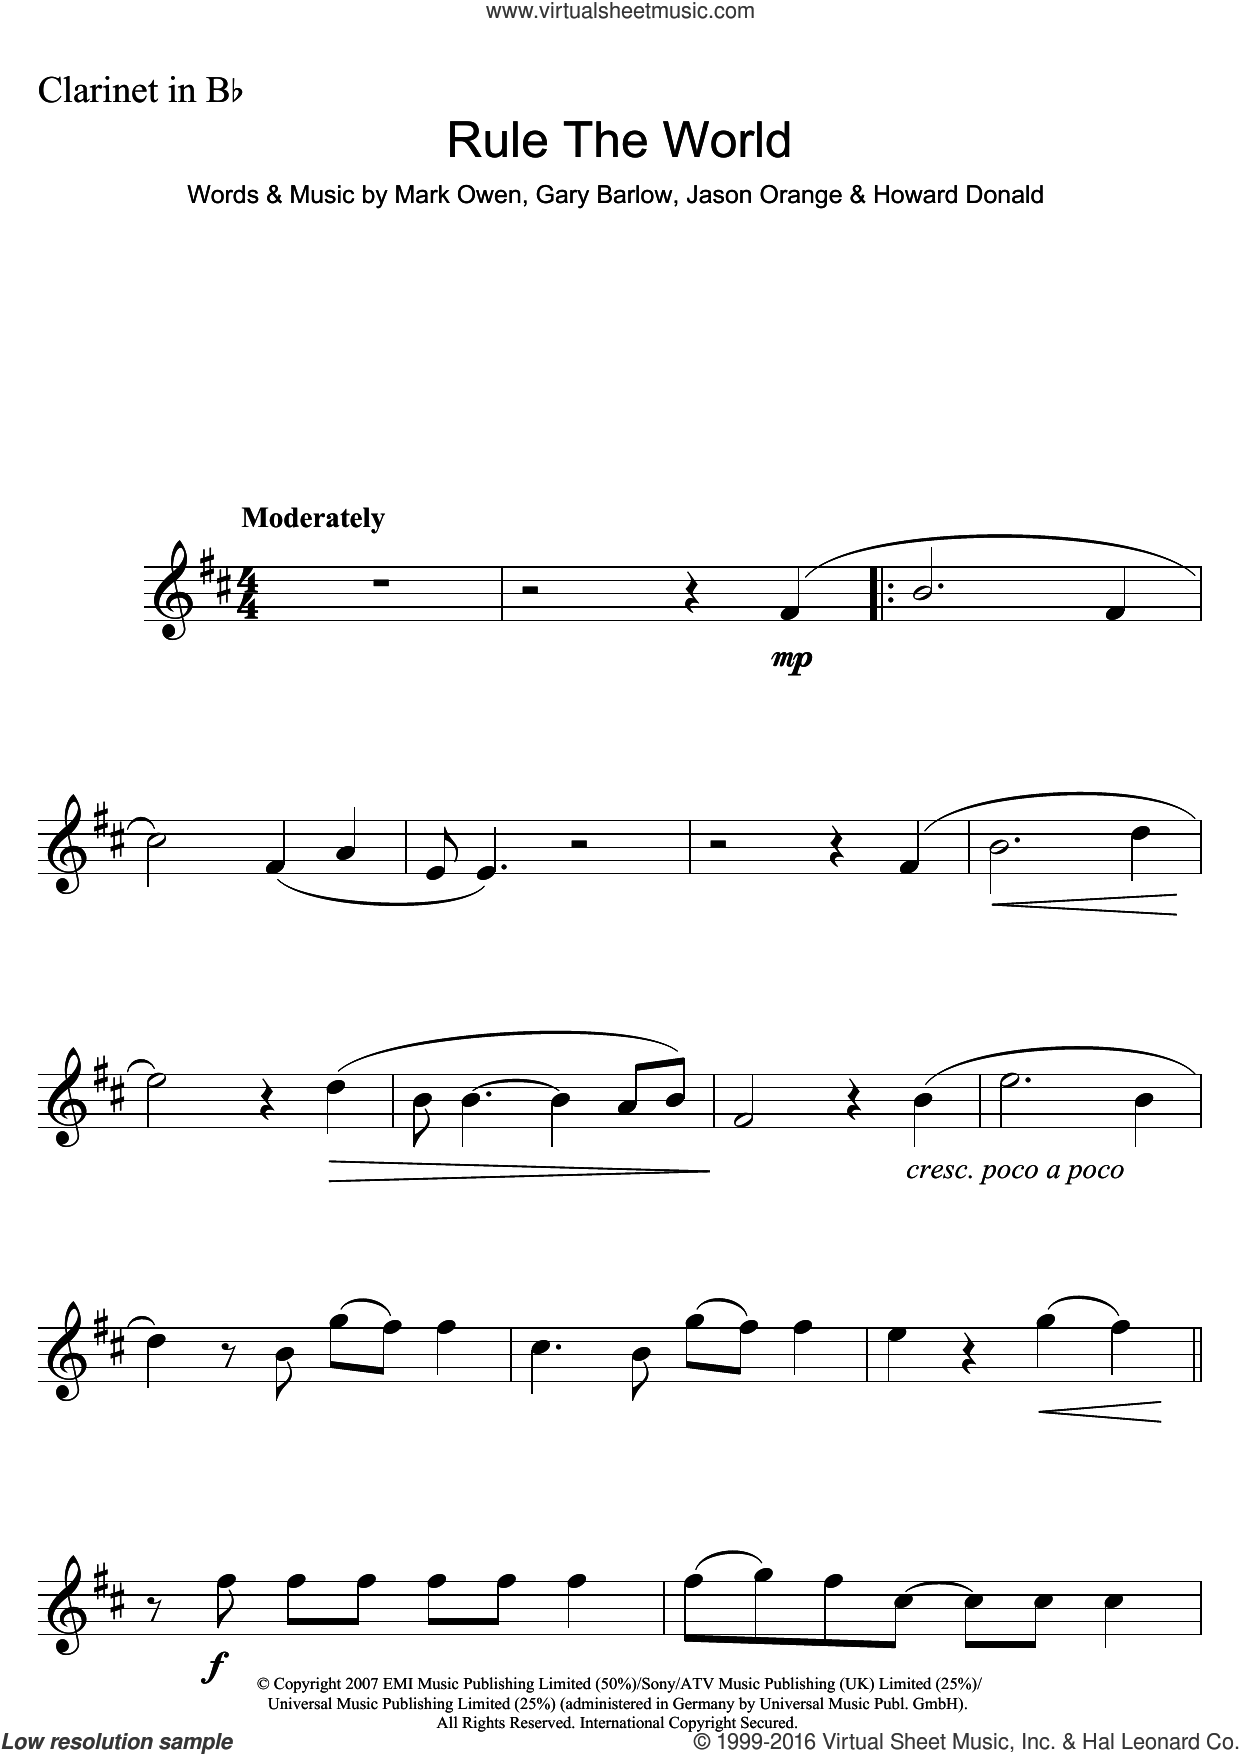 Rule The World (from Stardust) sheet music for clarinet solo by Take That, Gary Barlow, Howard Donald, Jason Orange and Mark Owen, intermediate skill level